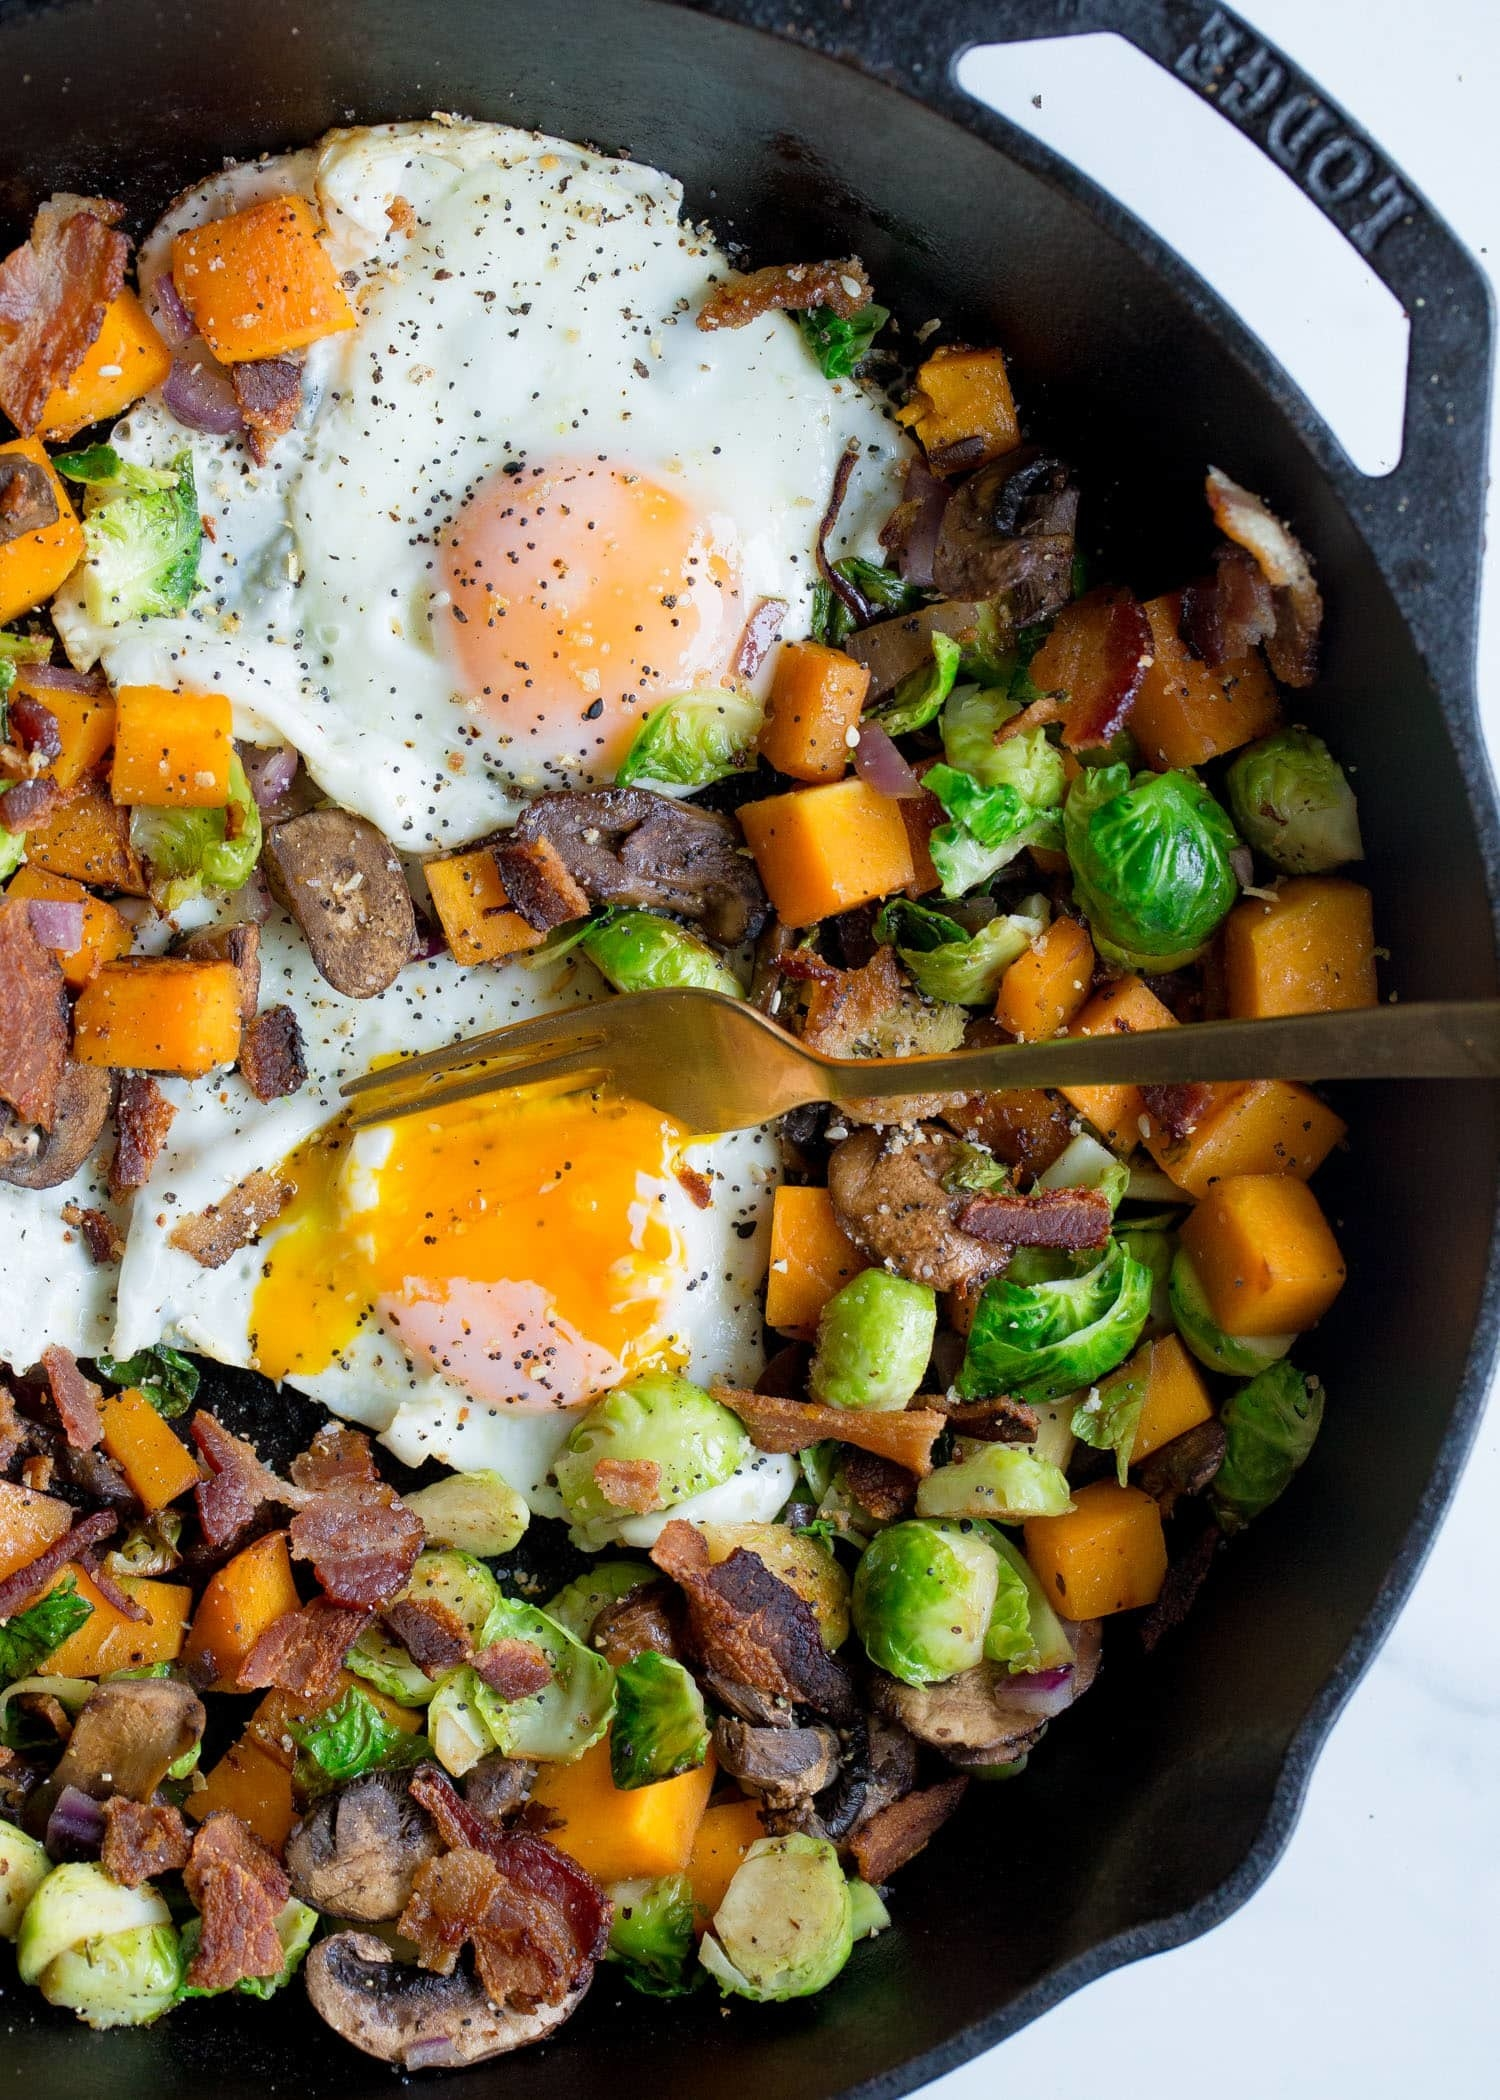 A skillet filled with chopped Brussels sprouts, mushrooms, bacon, and sweet potatoes, and topped with baked eggs.